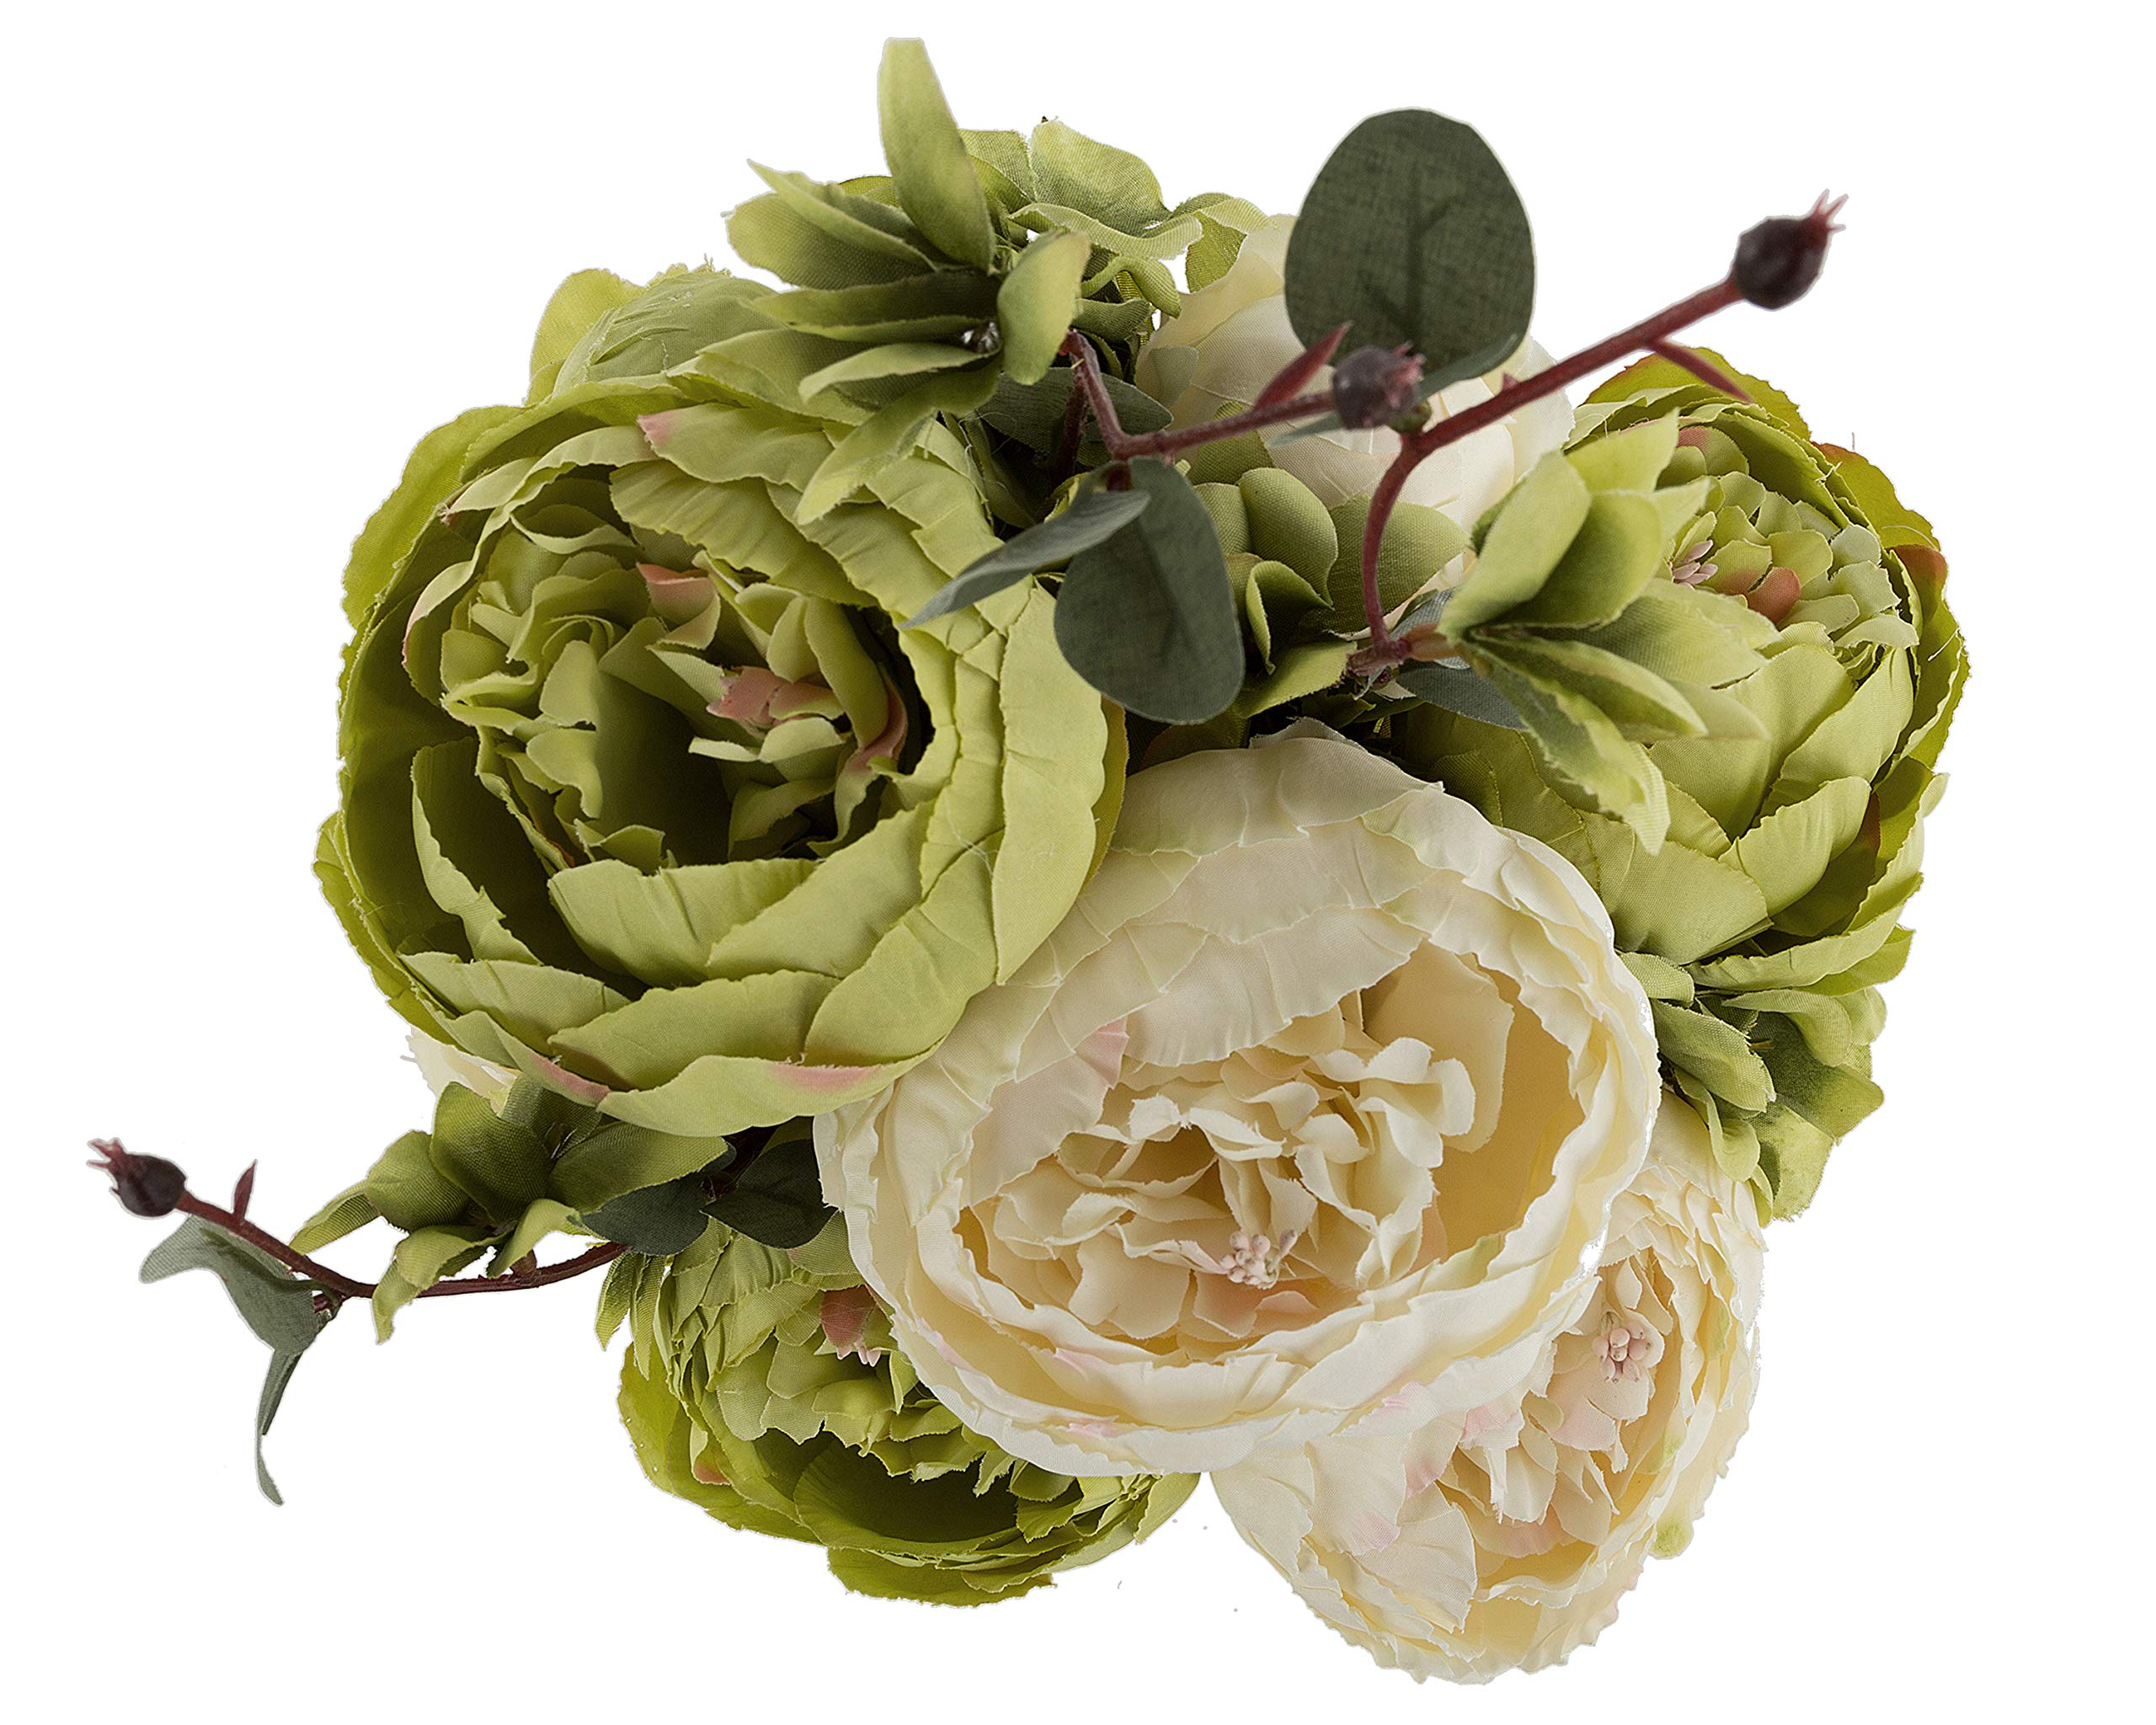 silk flower arrangements ezflowery 1 pack artificial peony silk flowers arrangement bouquet for wedding centerpiece room party home decoration, elegant vintage, perfect for spring, summer and occasions (1, green)